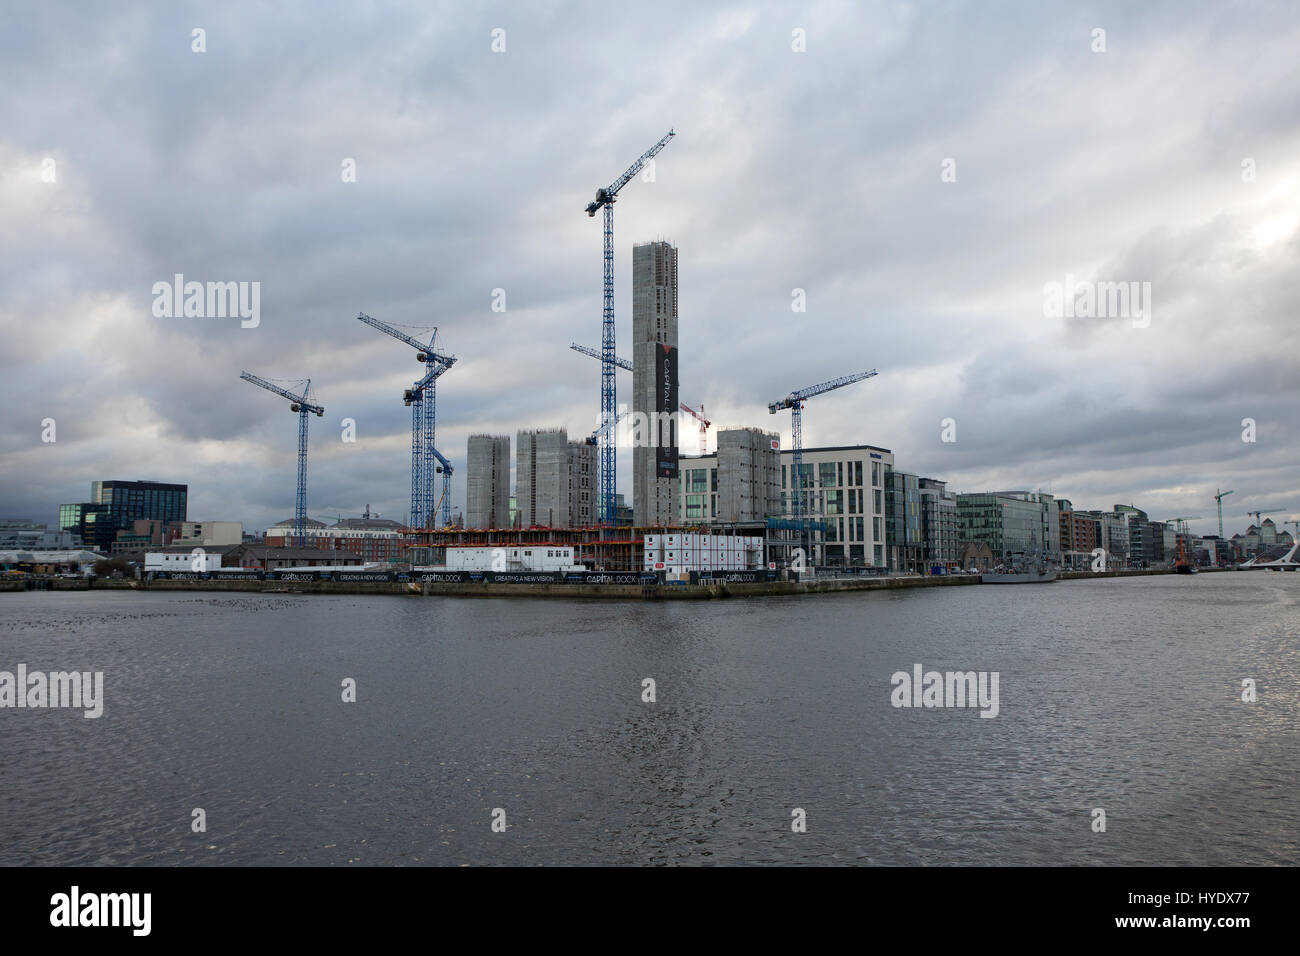 Construction work in the Dublin docklands, Ireland. - Stock Image